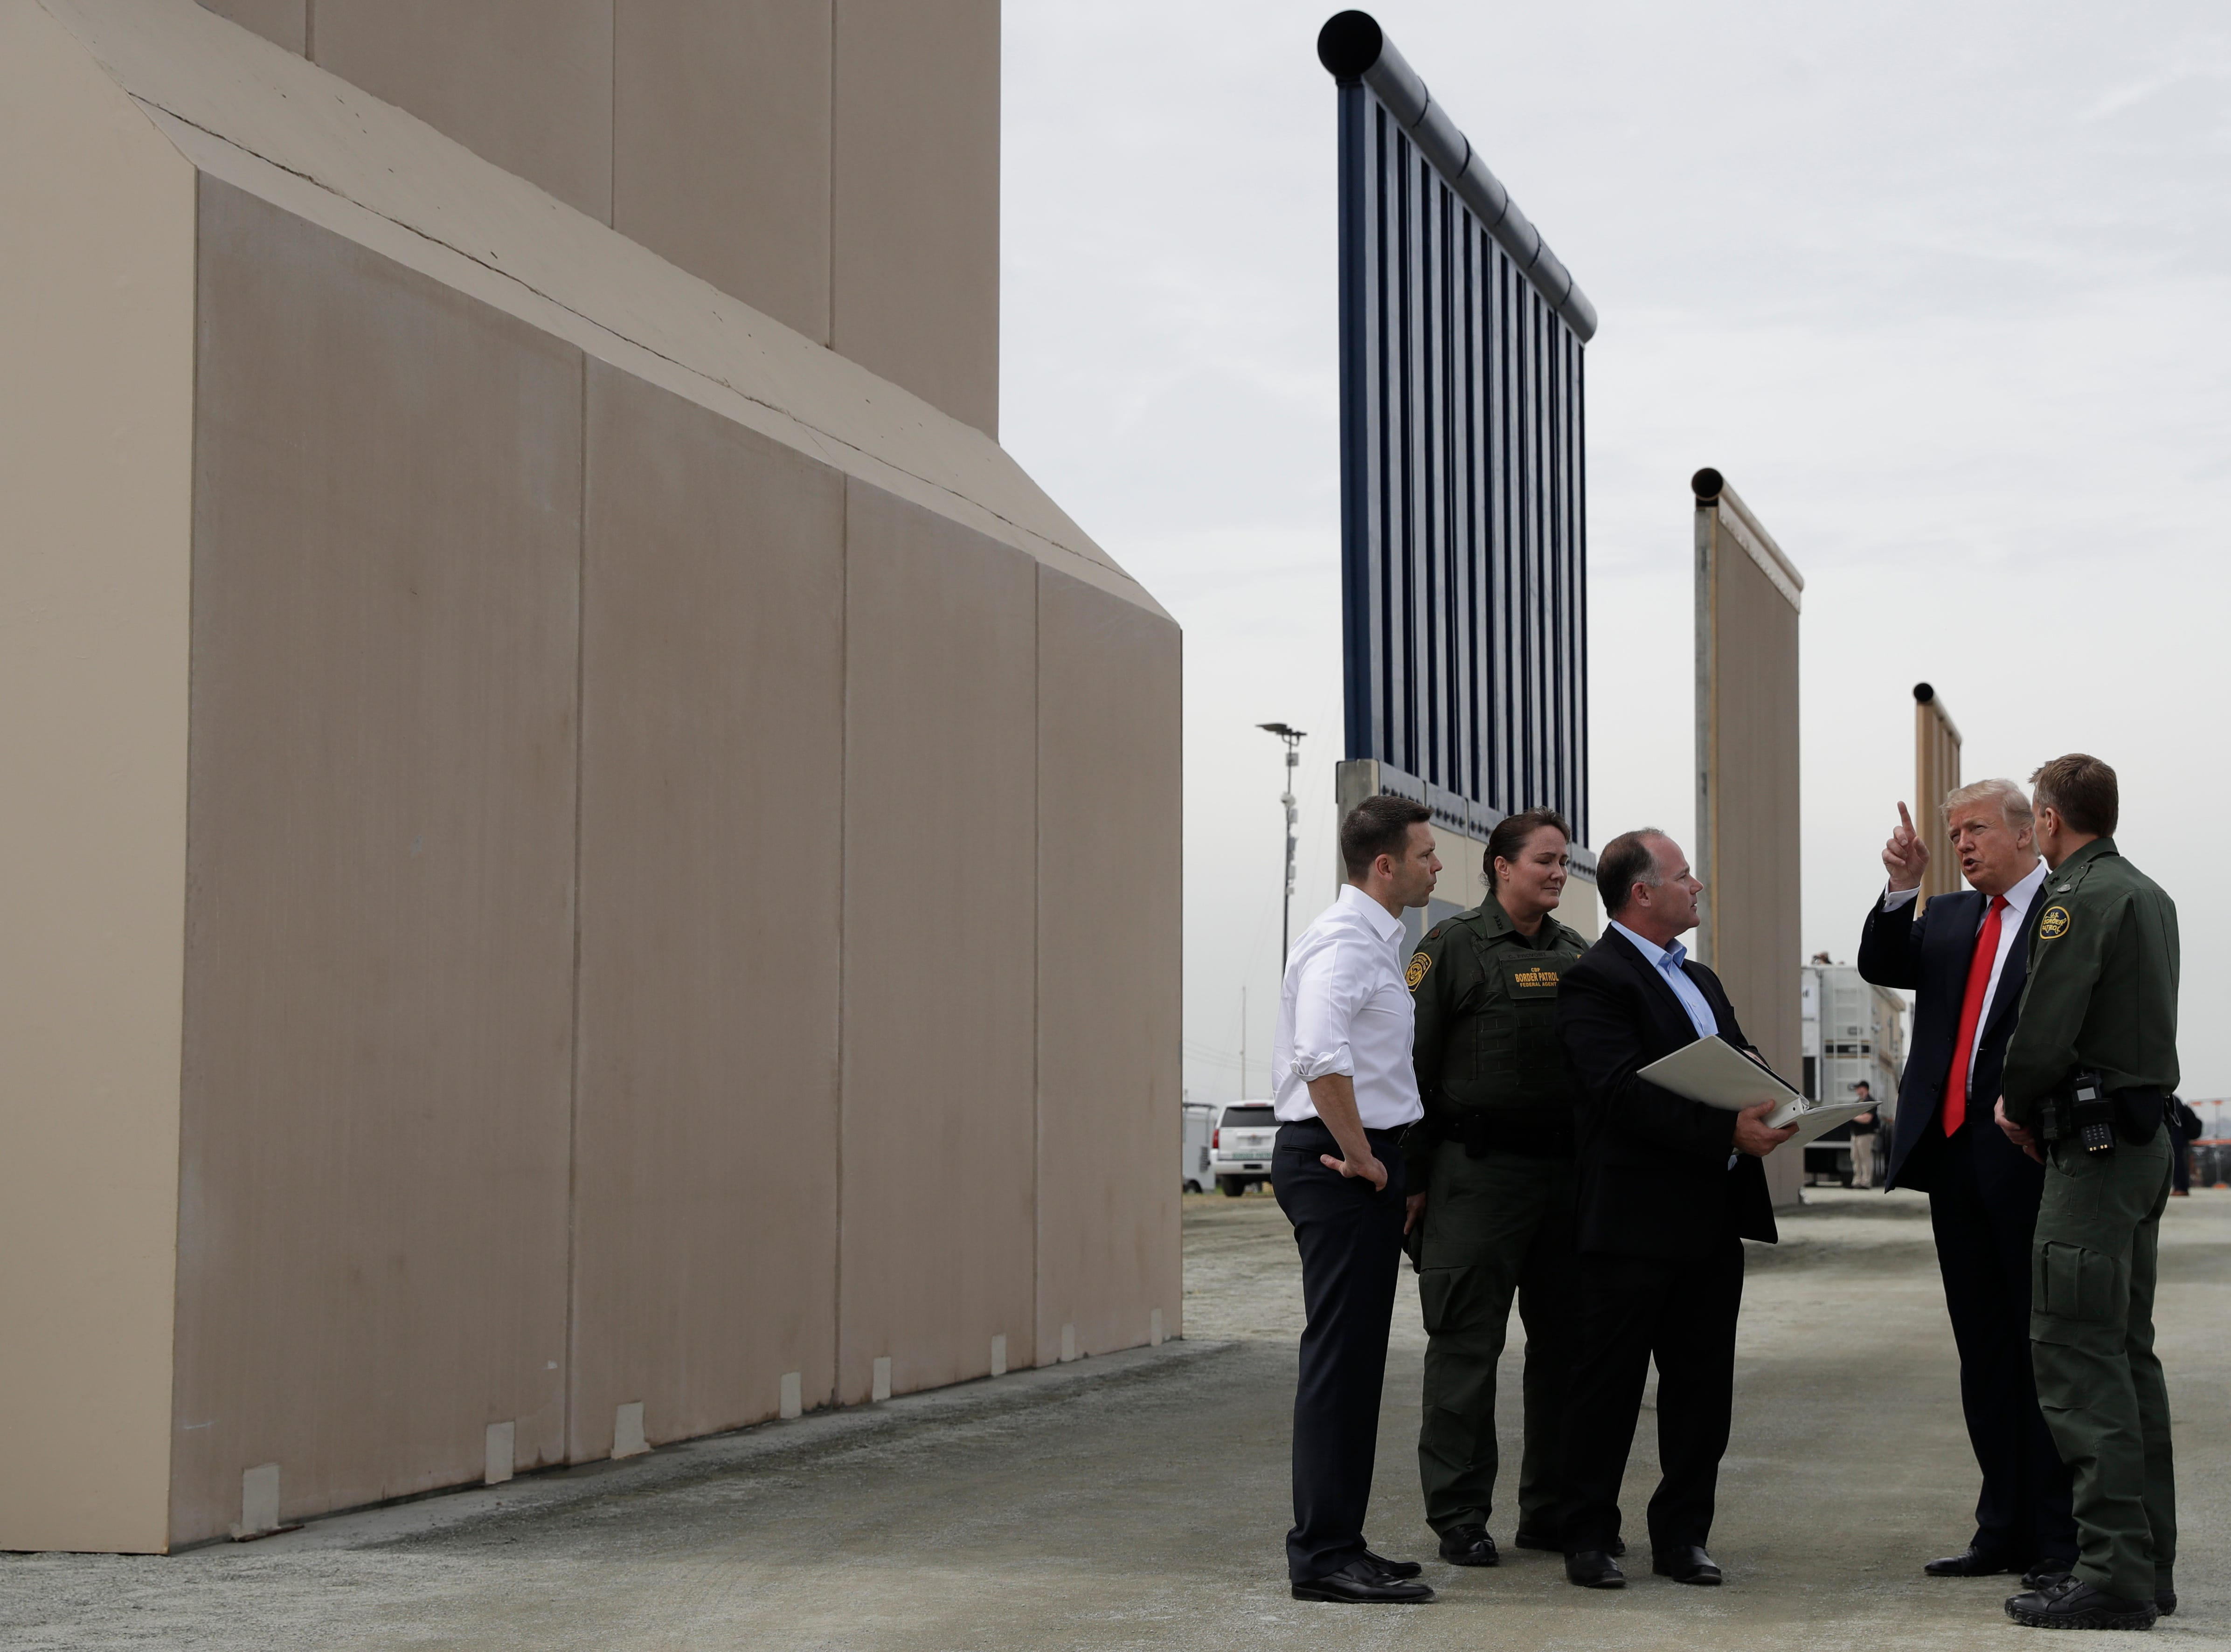 March 13, 2018: President Donald Trump speaks during a tour as he reviews border wall prototypes in San Diego.